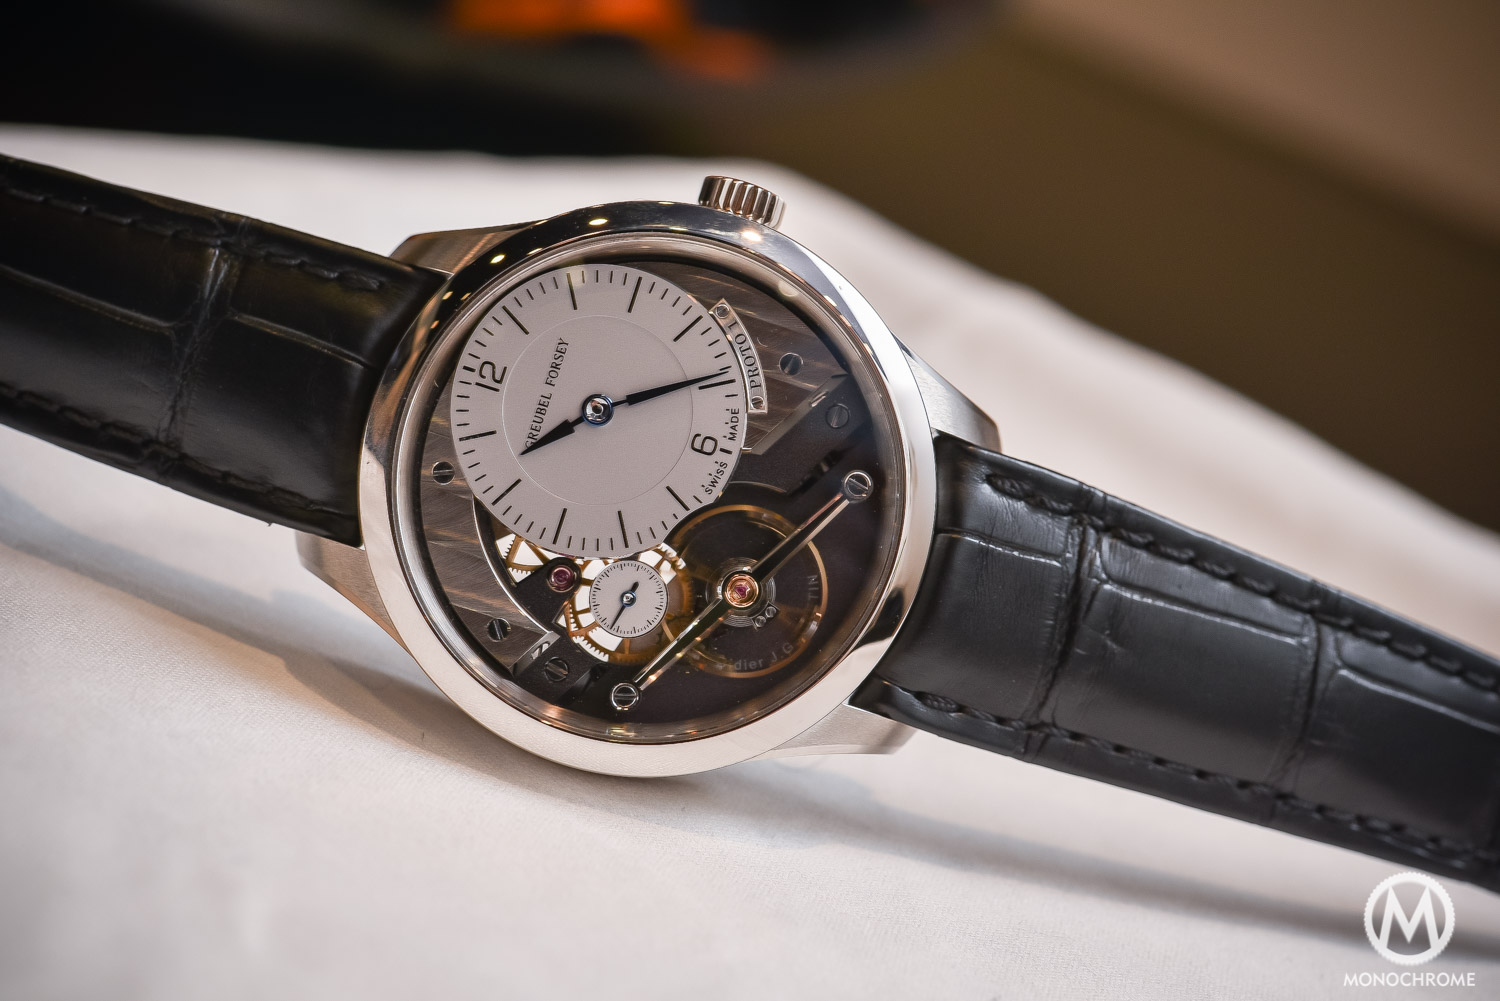 SIHH 2016 - Thoughts about the Greubel Forsey Signature 1